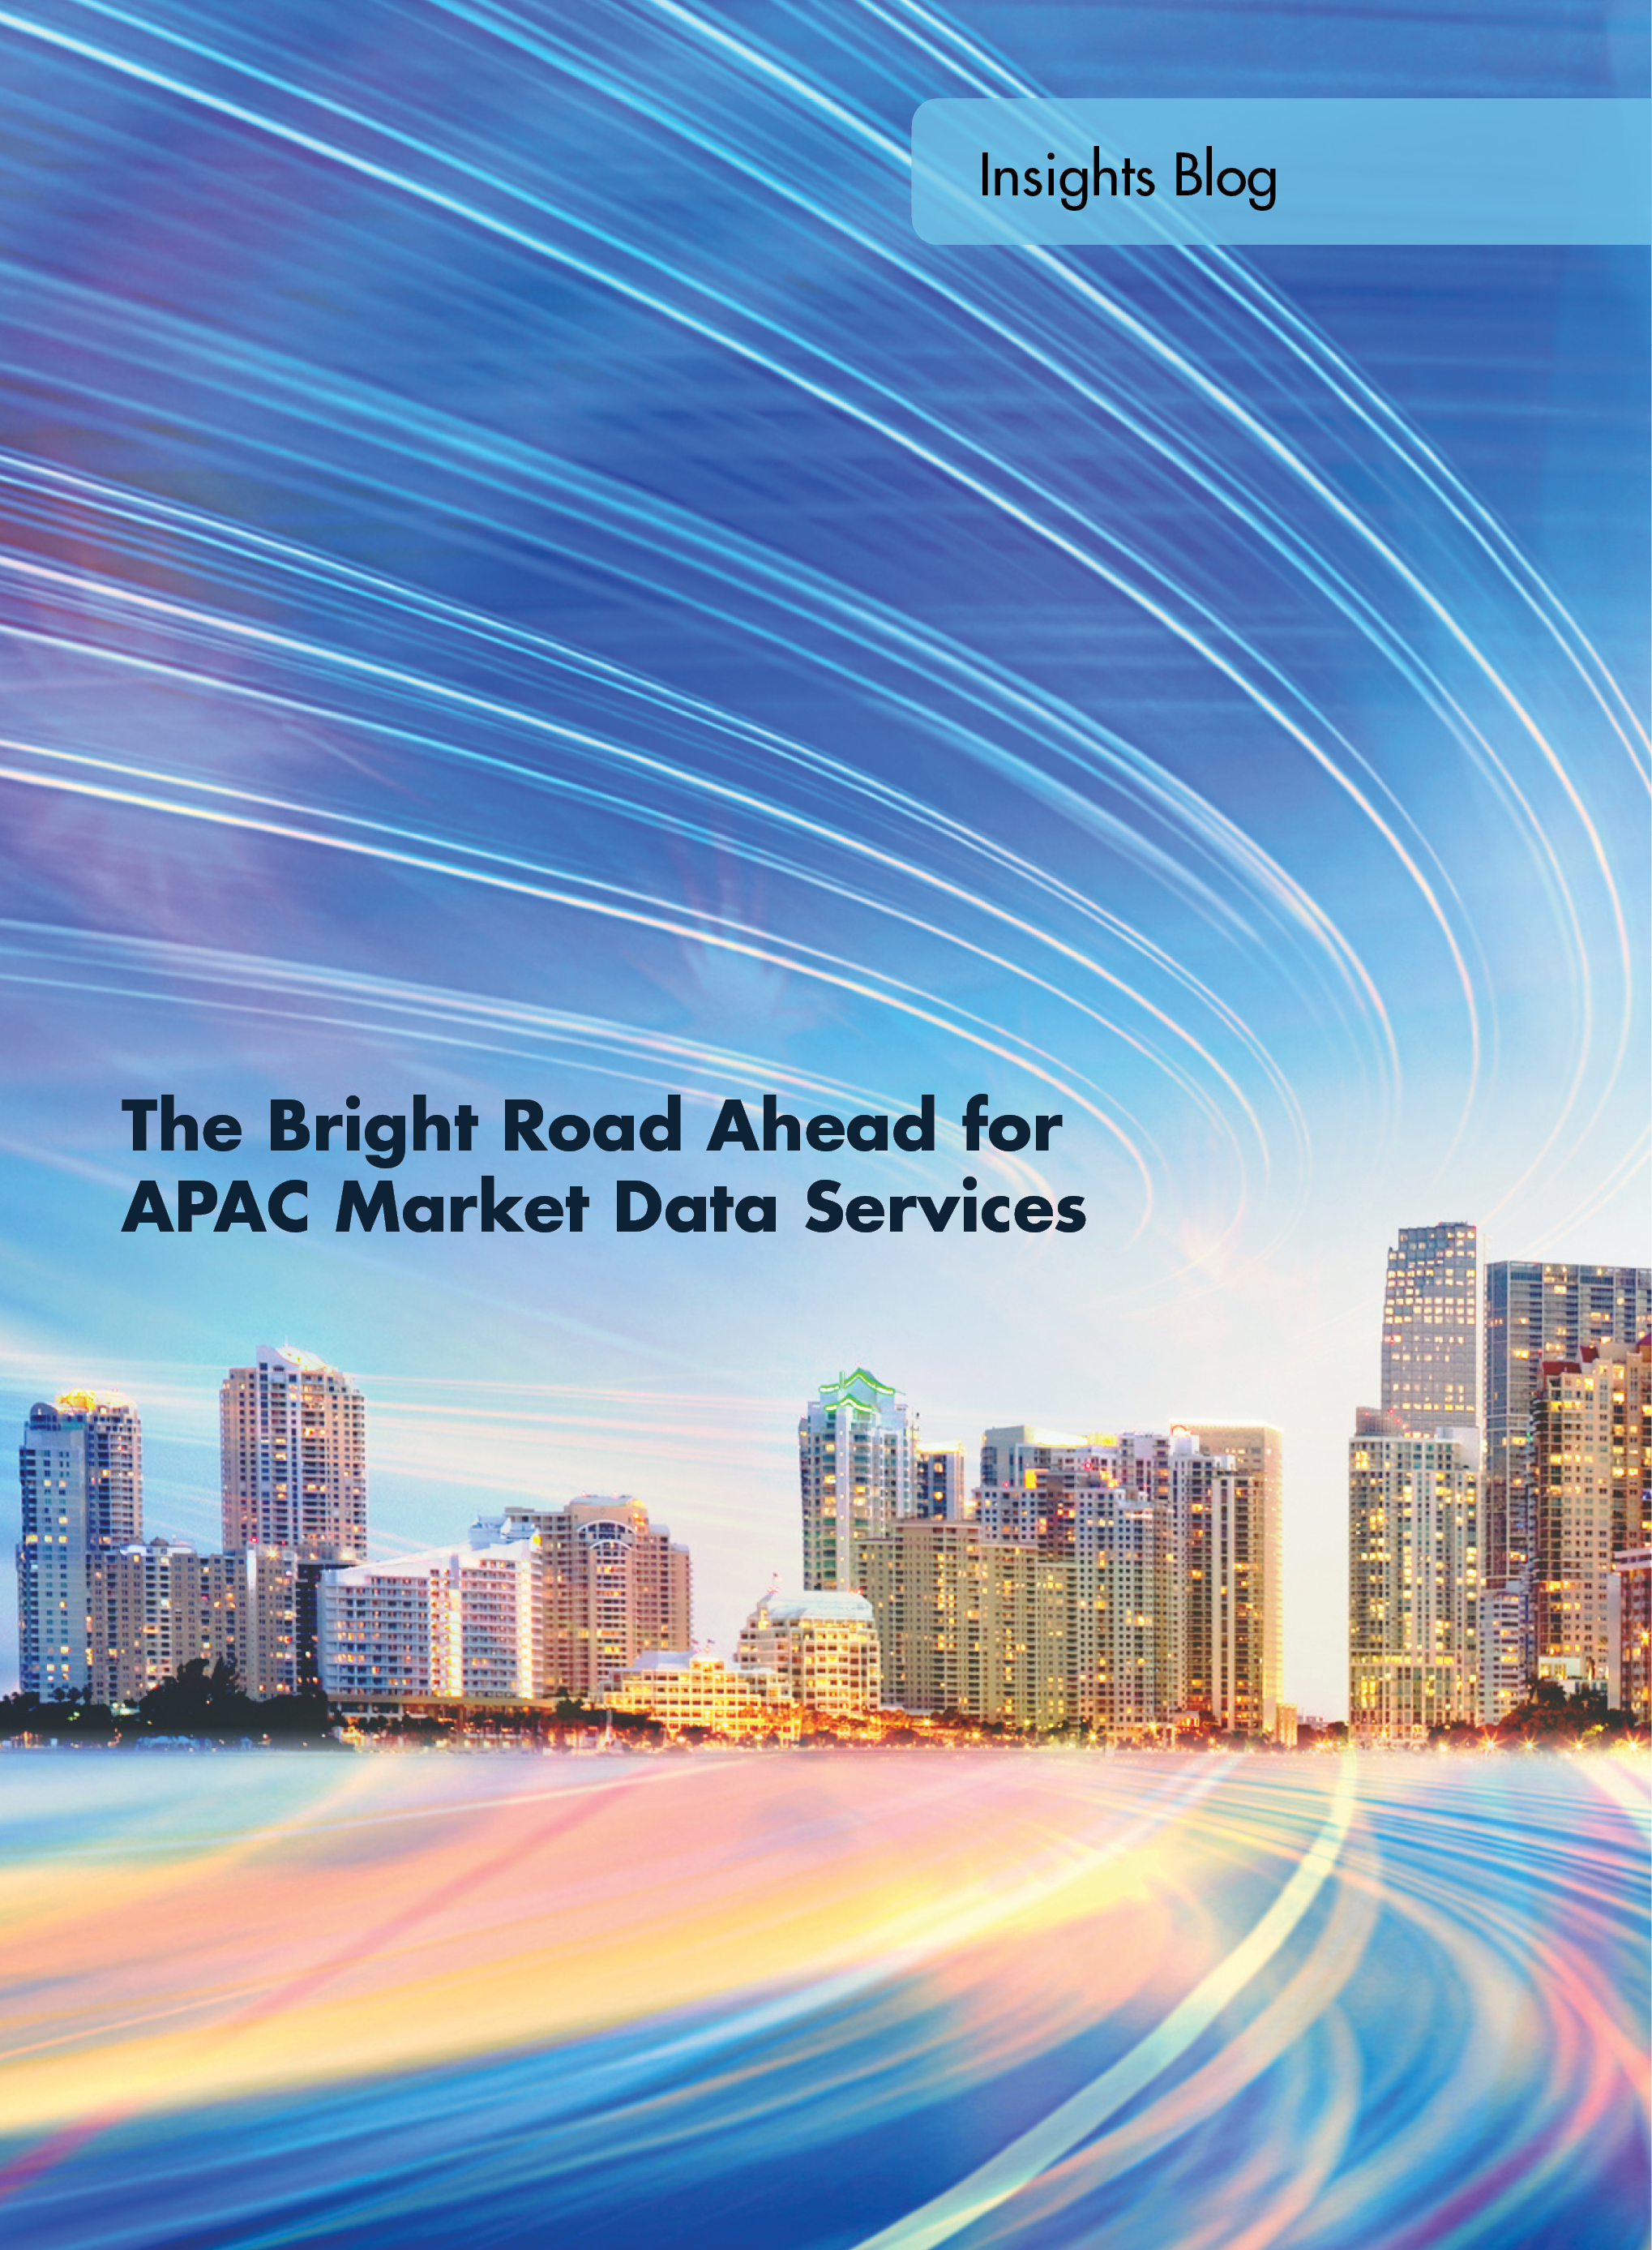 Blog - The Bright Road Ahead for APAC Market Data Services